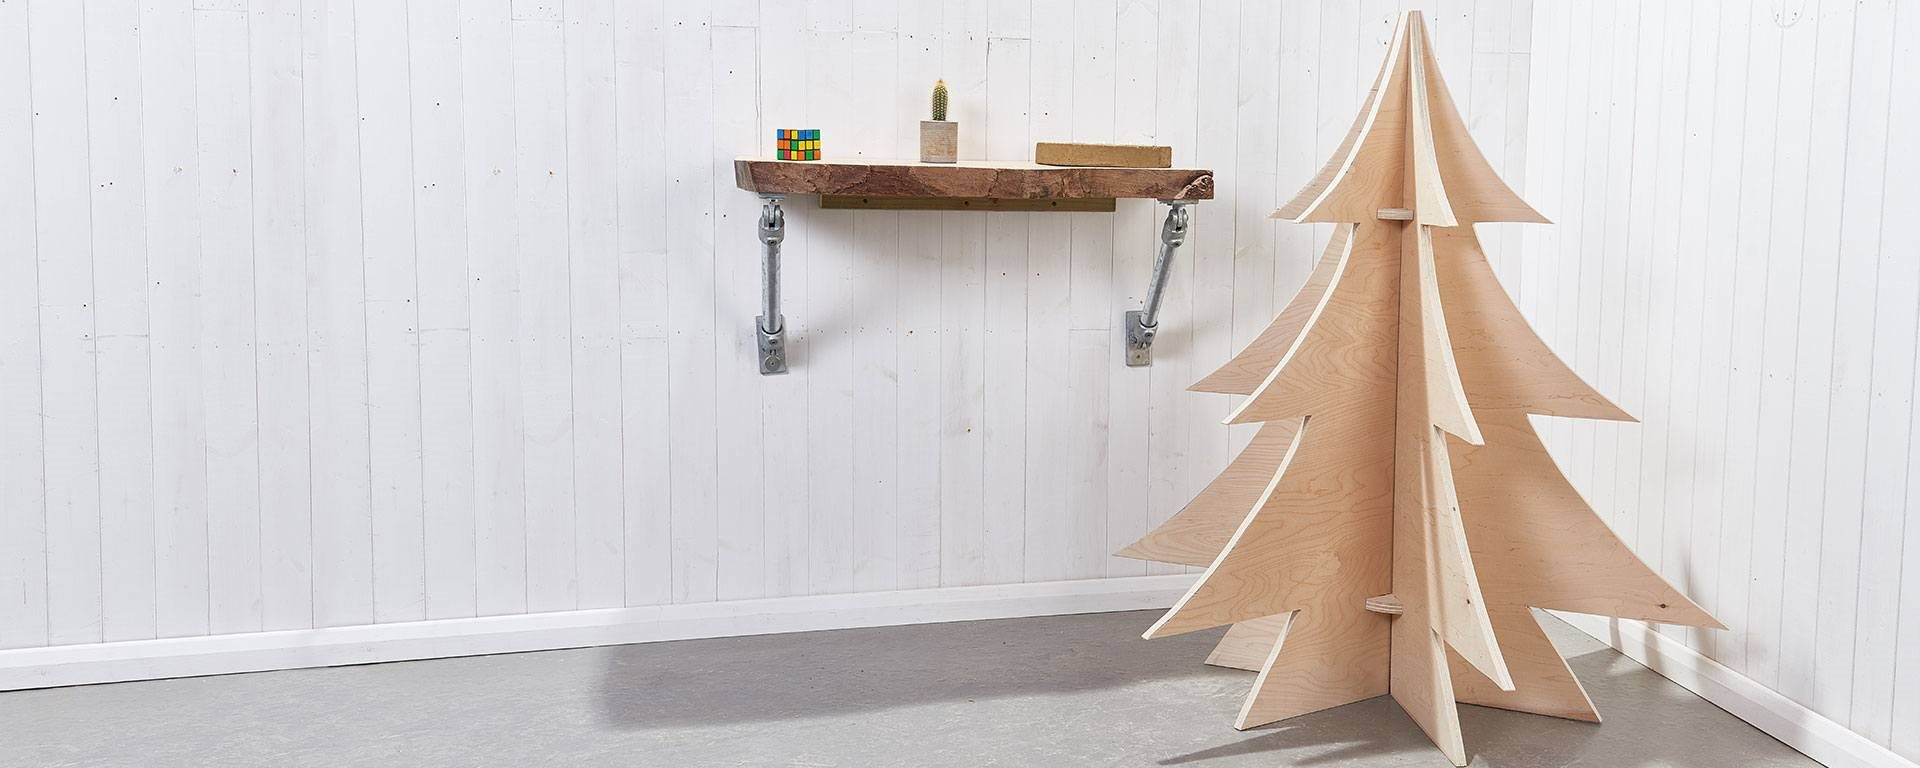 How To Build A Decorative Plywood Christmas Tree